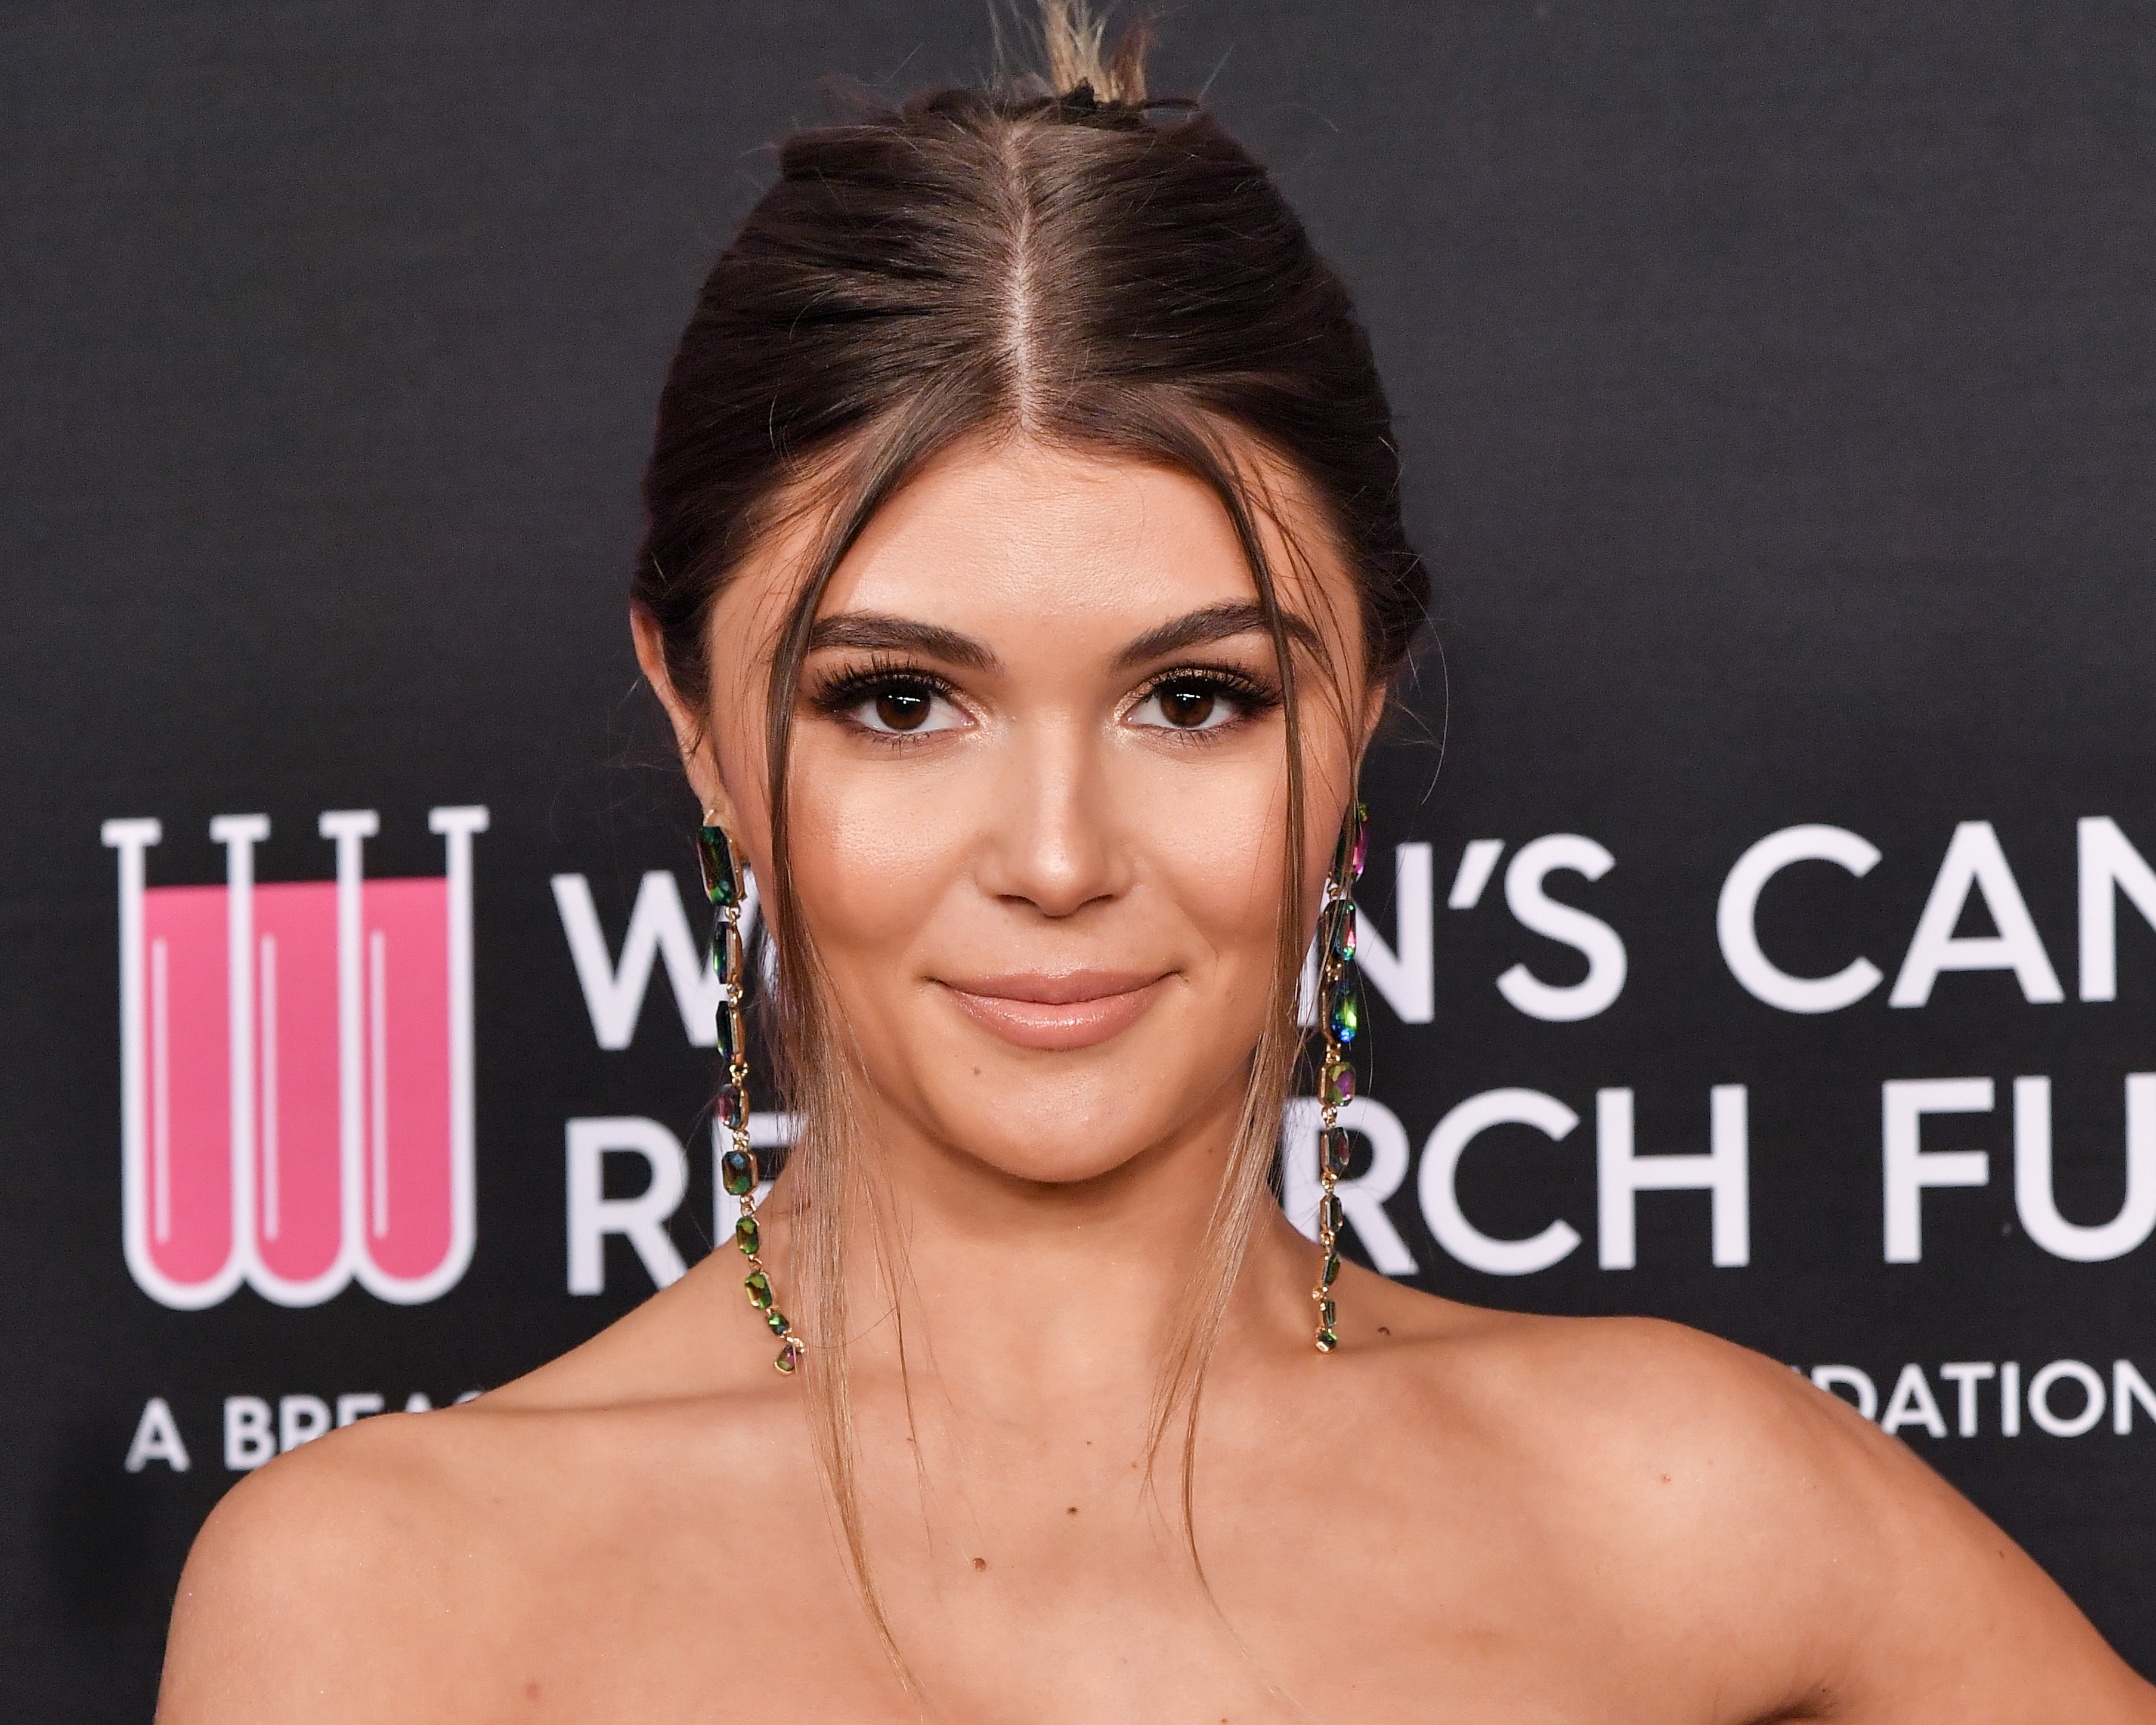 Olivia Jade Giannulli Receives Backlash for White Privilege Comments About Racism Amid College Admissions Scandal